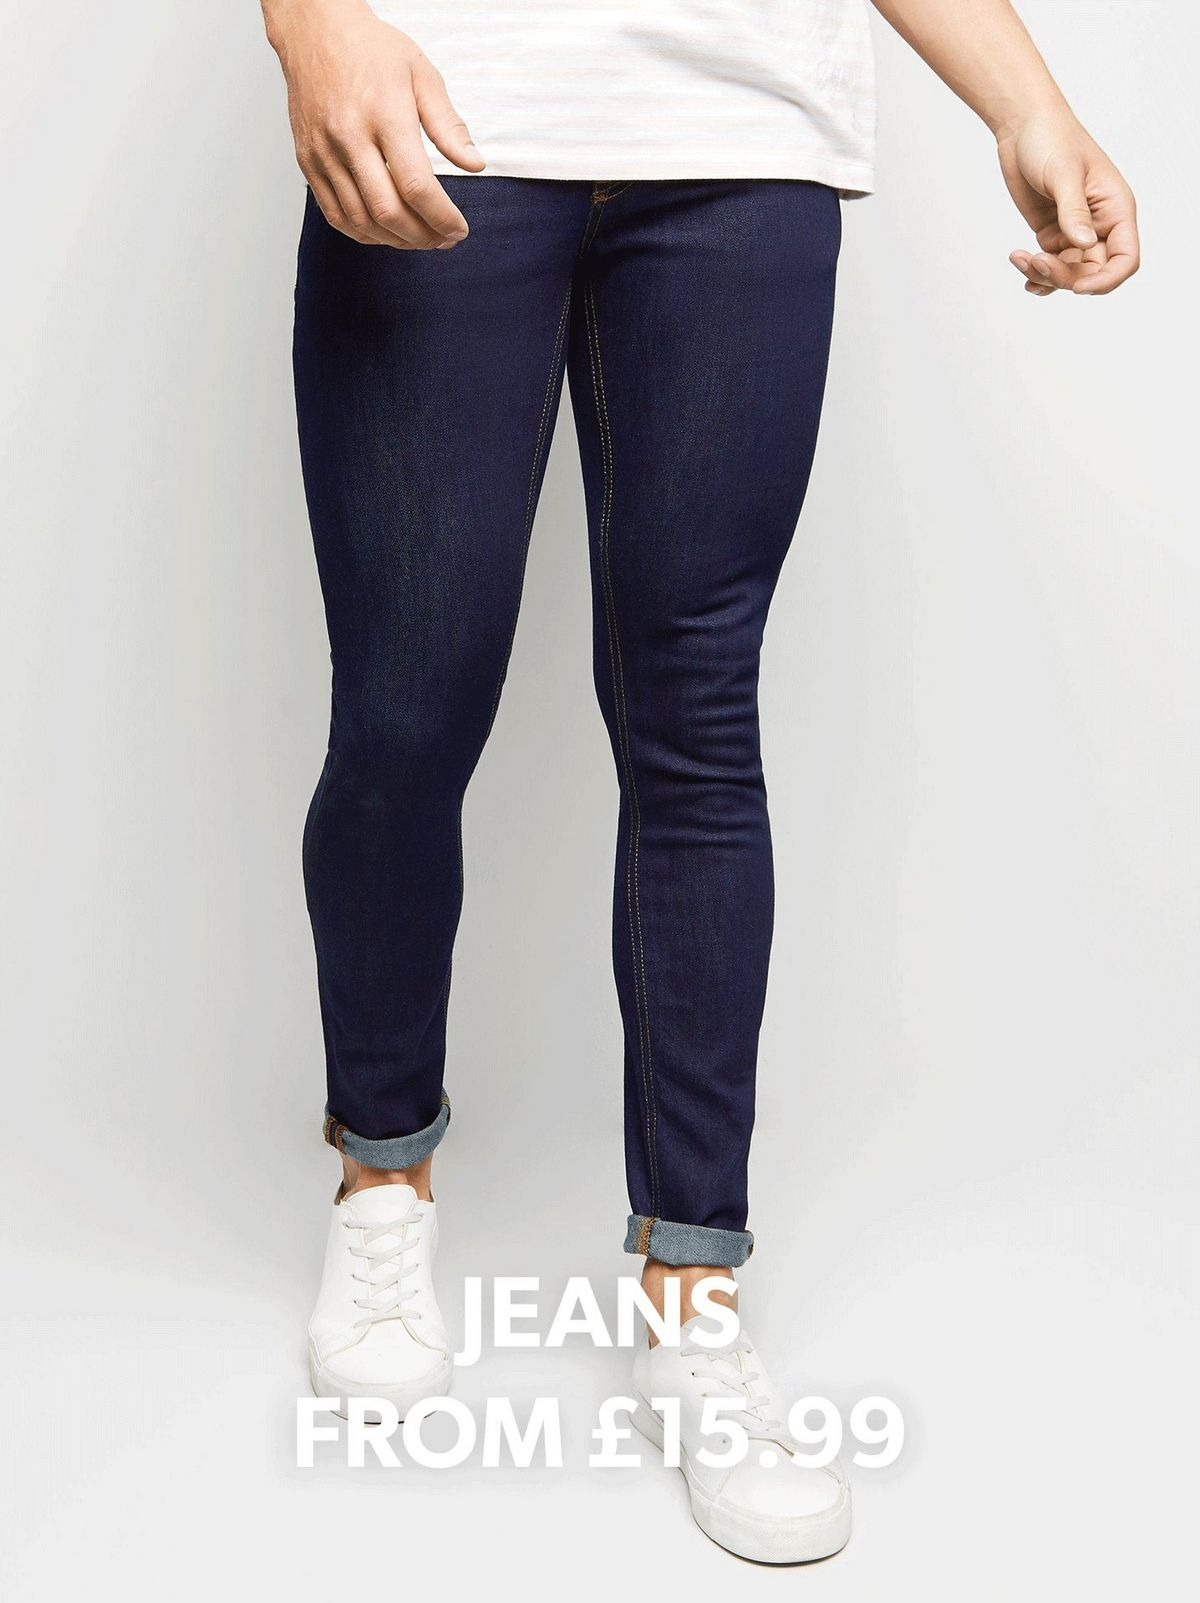 20a8a99c02 2 for £15 jeans.